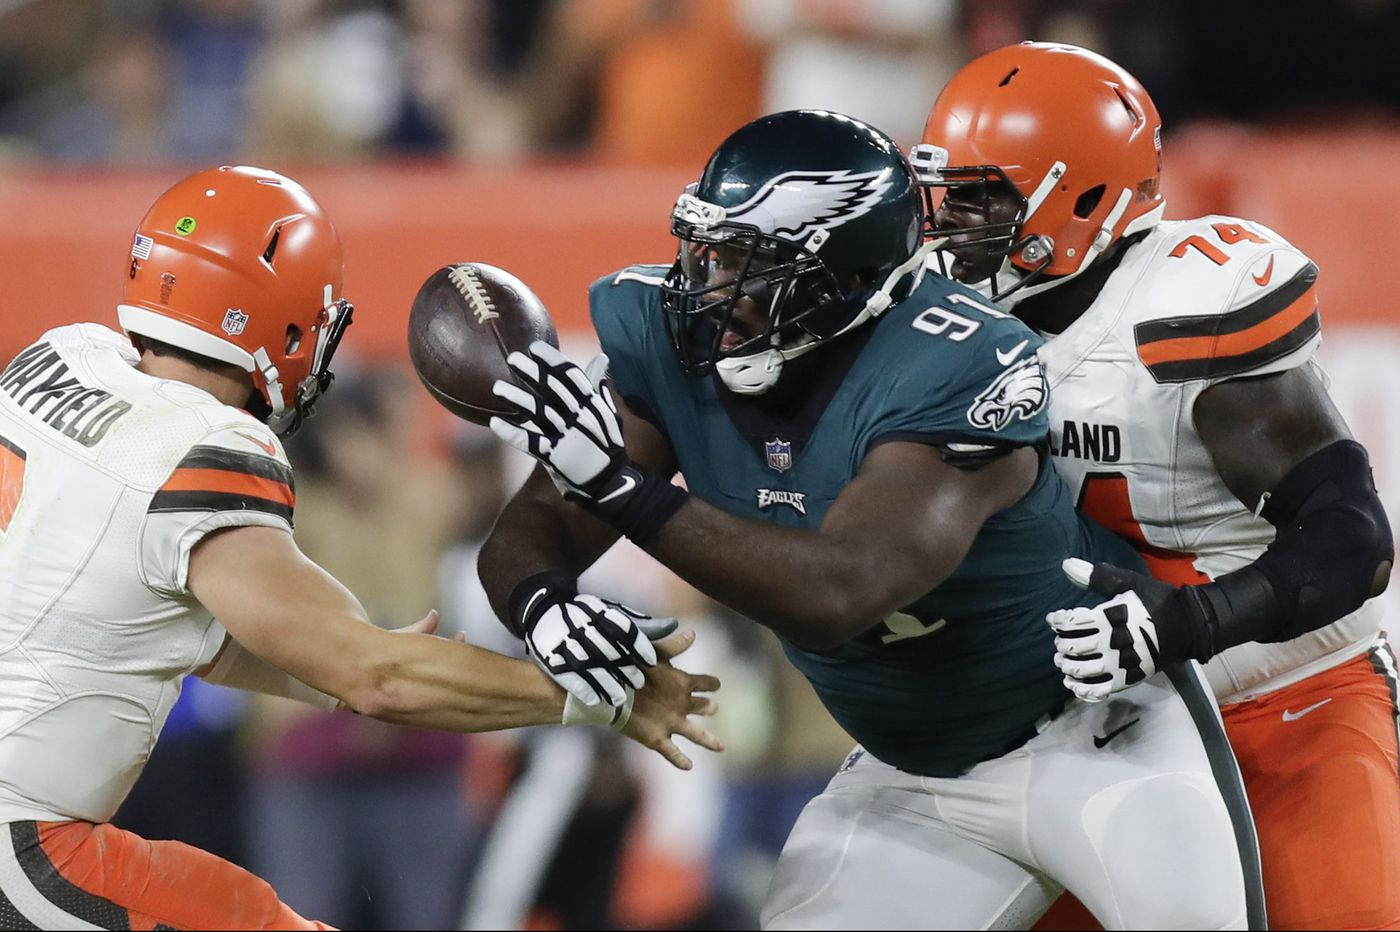 Eagles-Browns: What we learned about Nick Foles, Fletcher Cox and others in the third preseason game | Jeff McLane